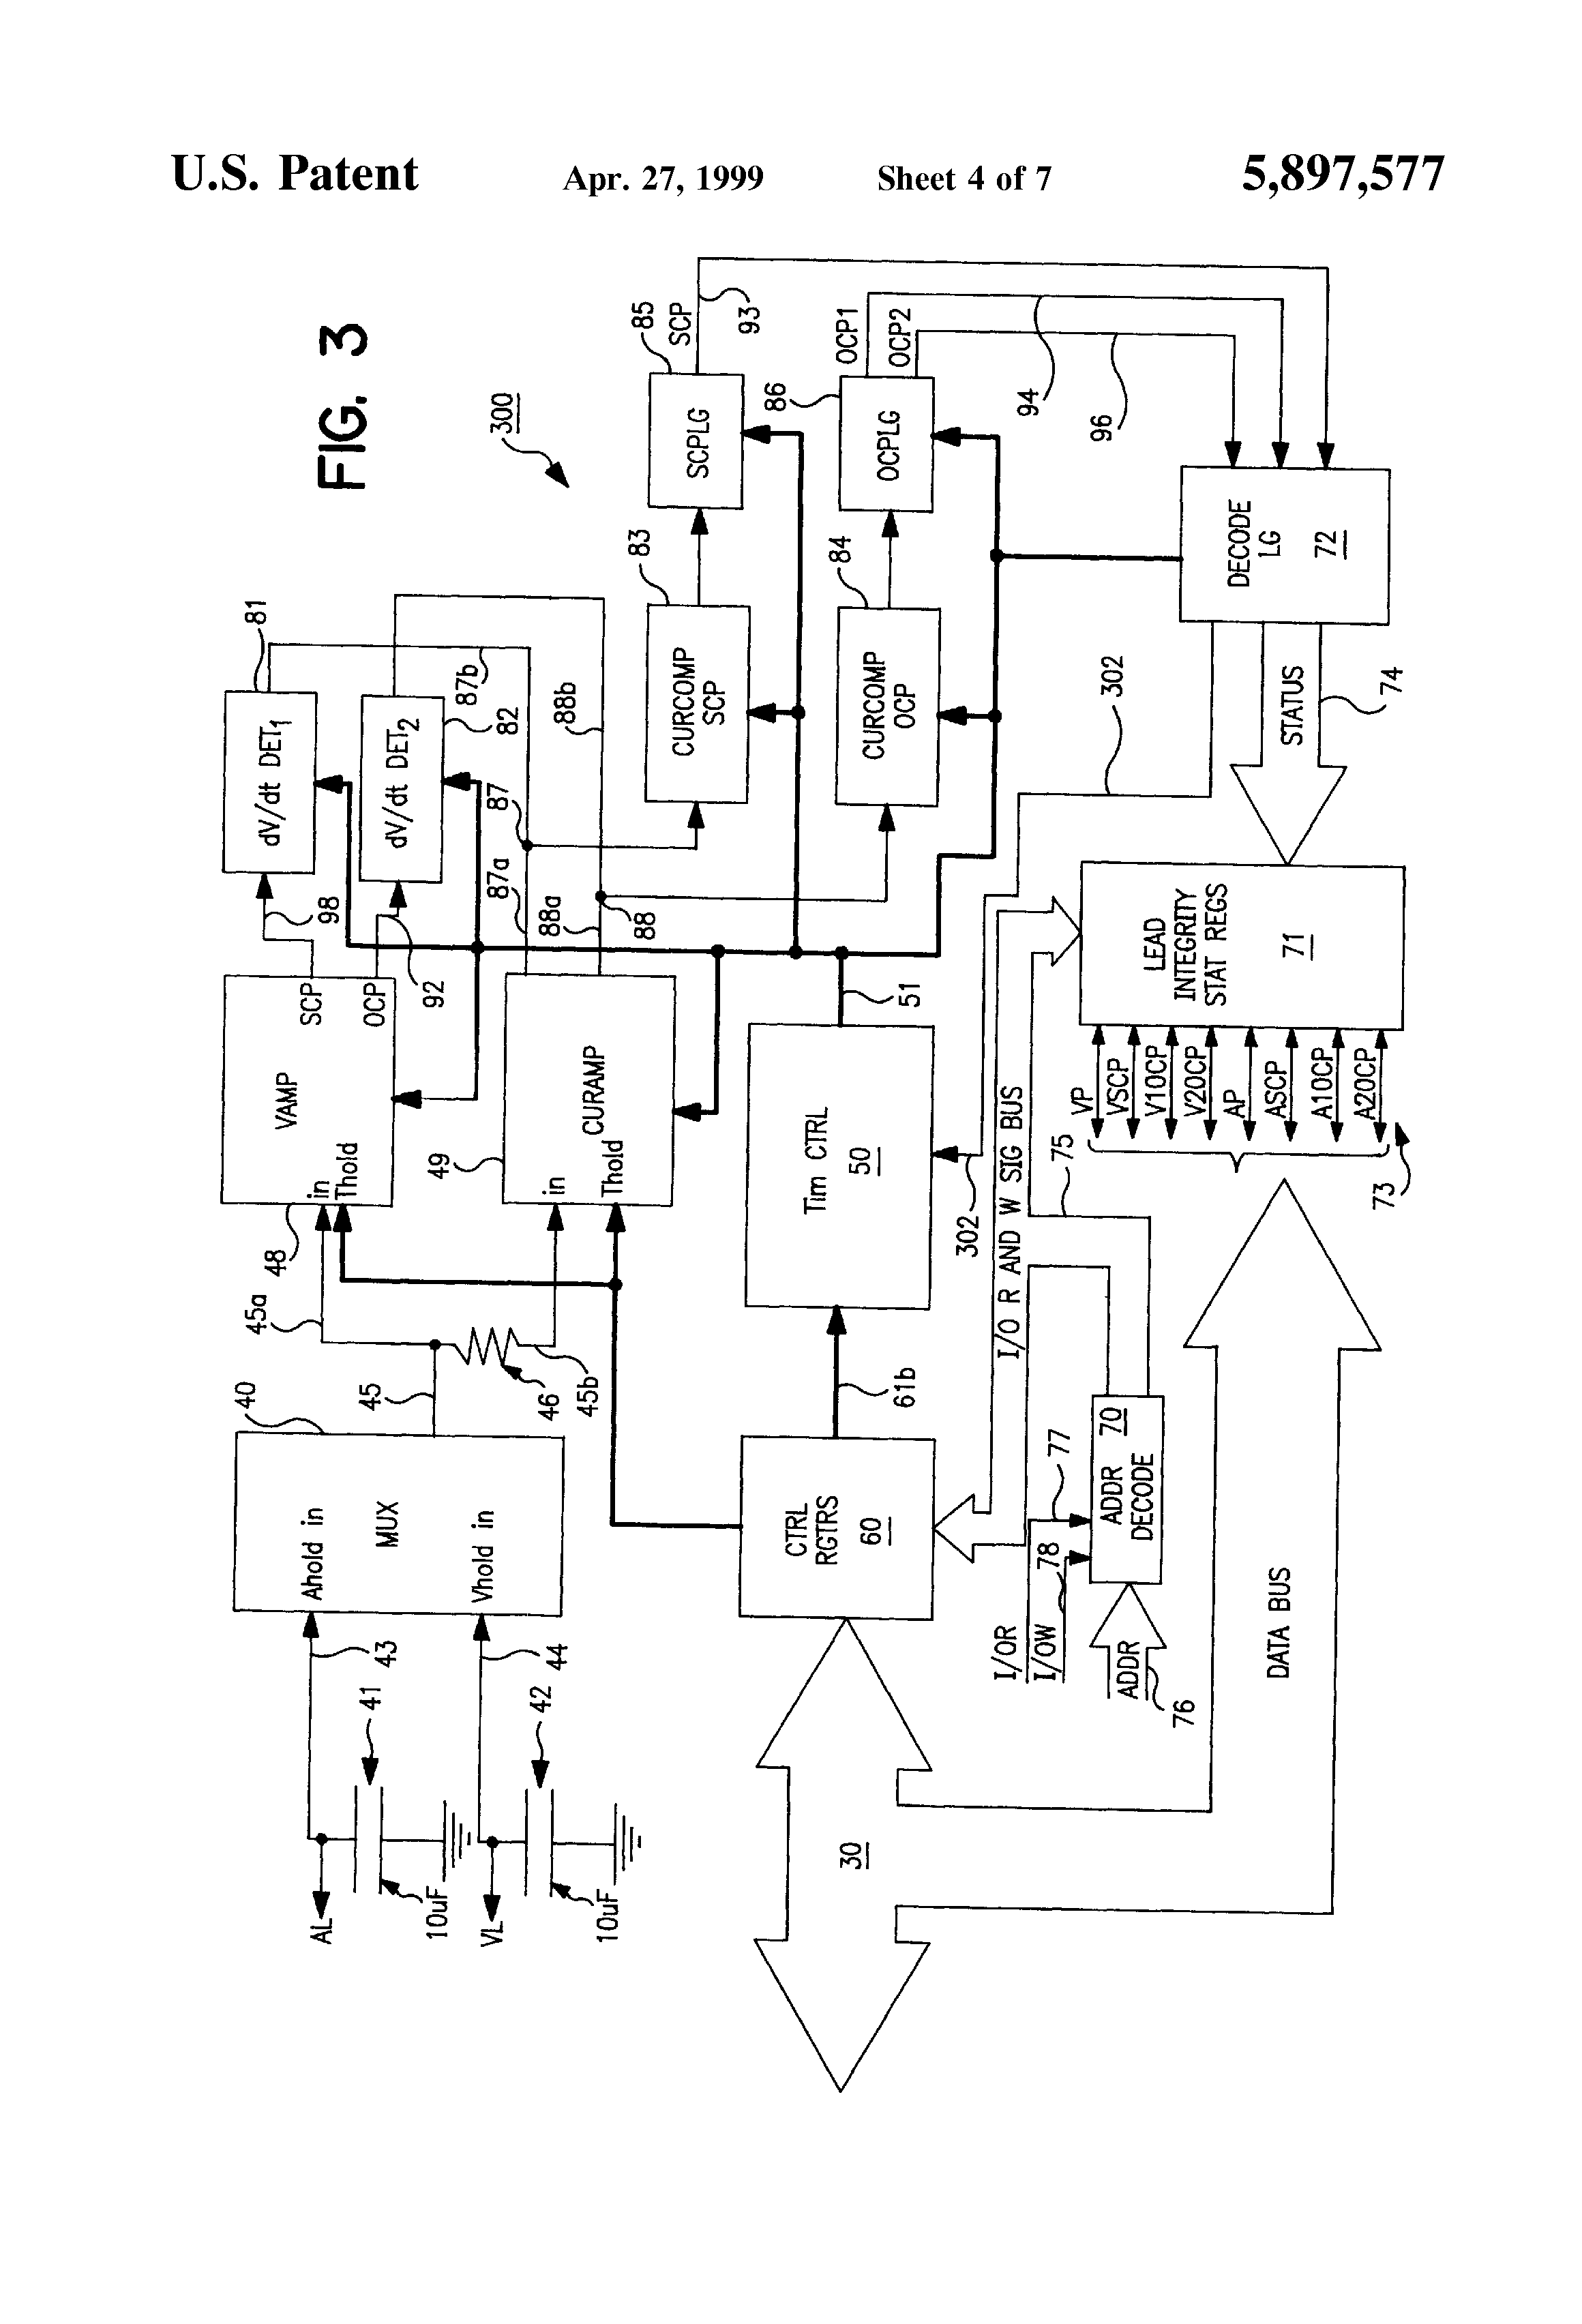 patent us5897577 - pacing lead impedance monitoring circuit and method